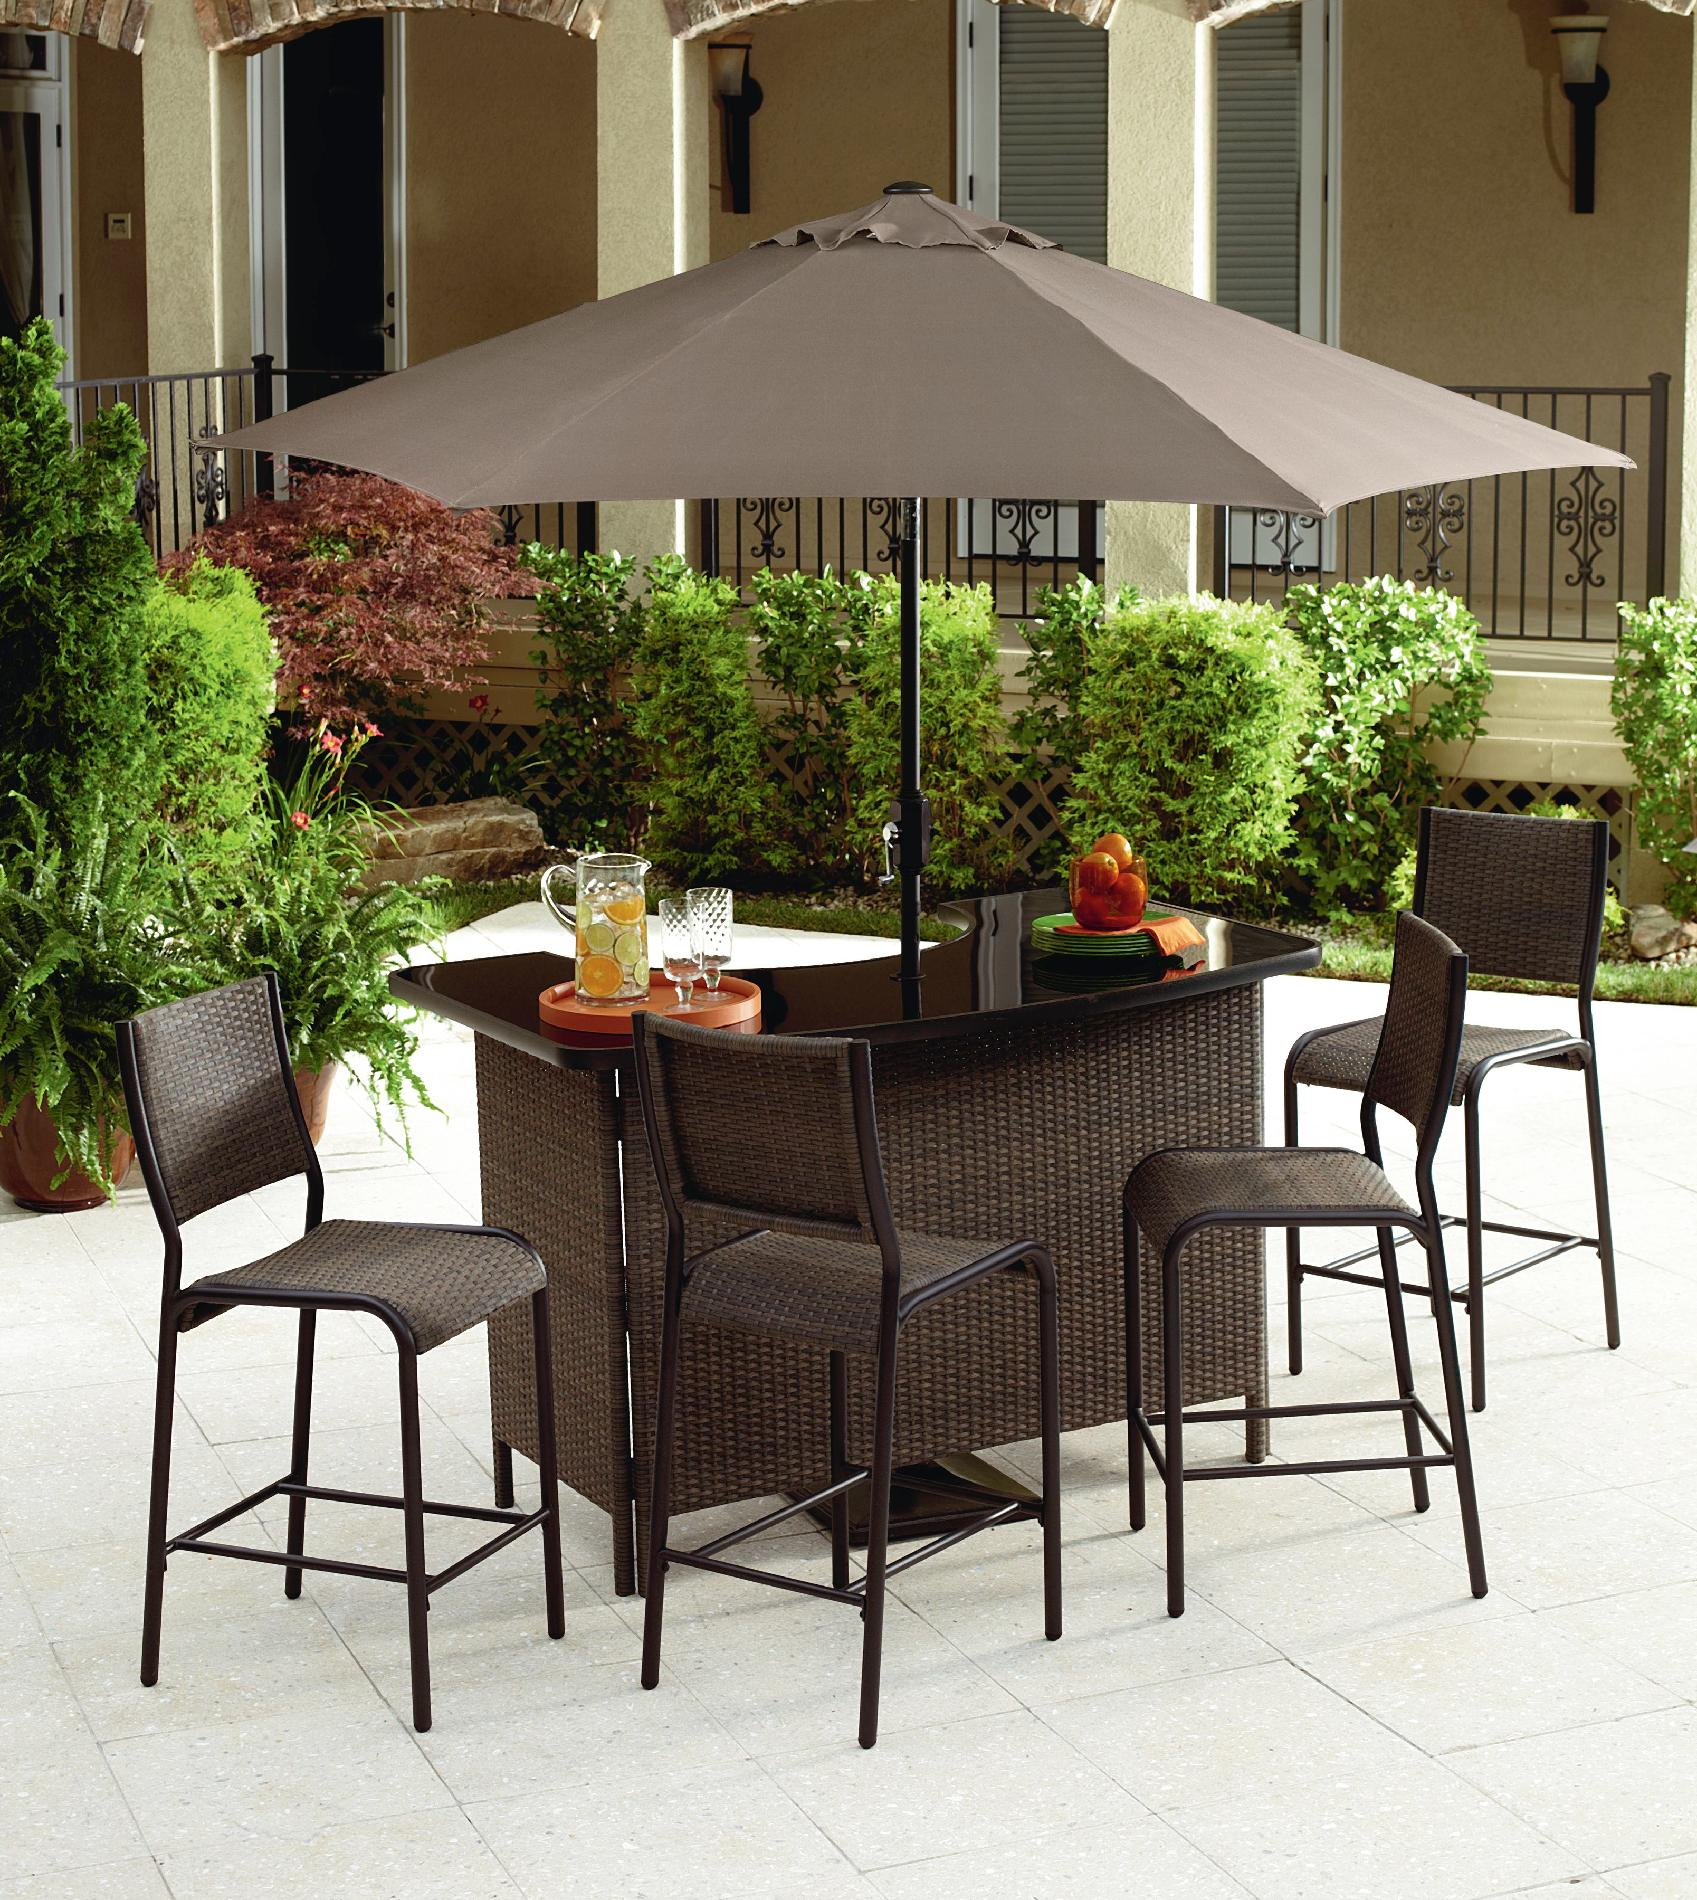 Outdoor Patio Design Pictures Grand Resort Wilton 5 Piece Bar Set